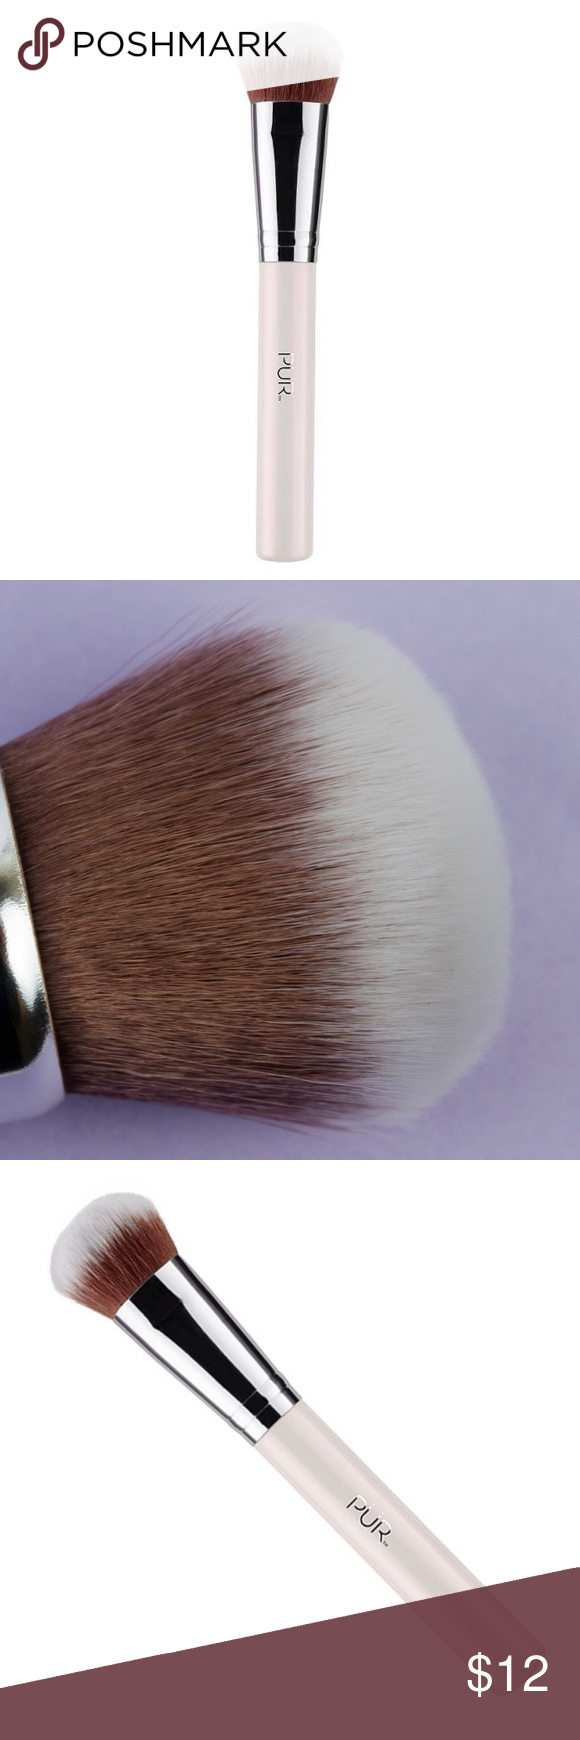 PÜR Contour Blending Brush Blending brushes, Pur makeup